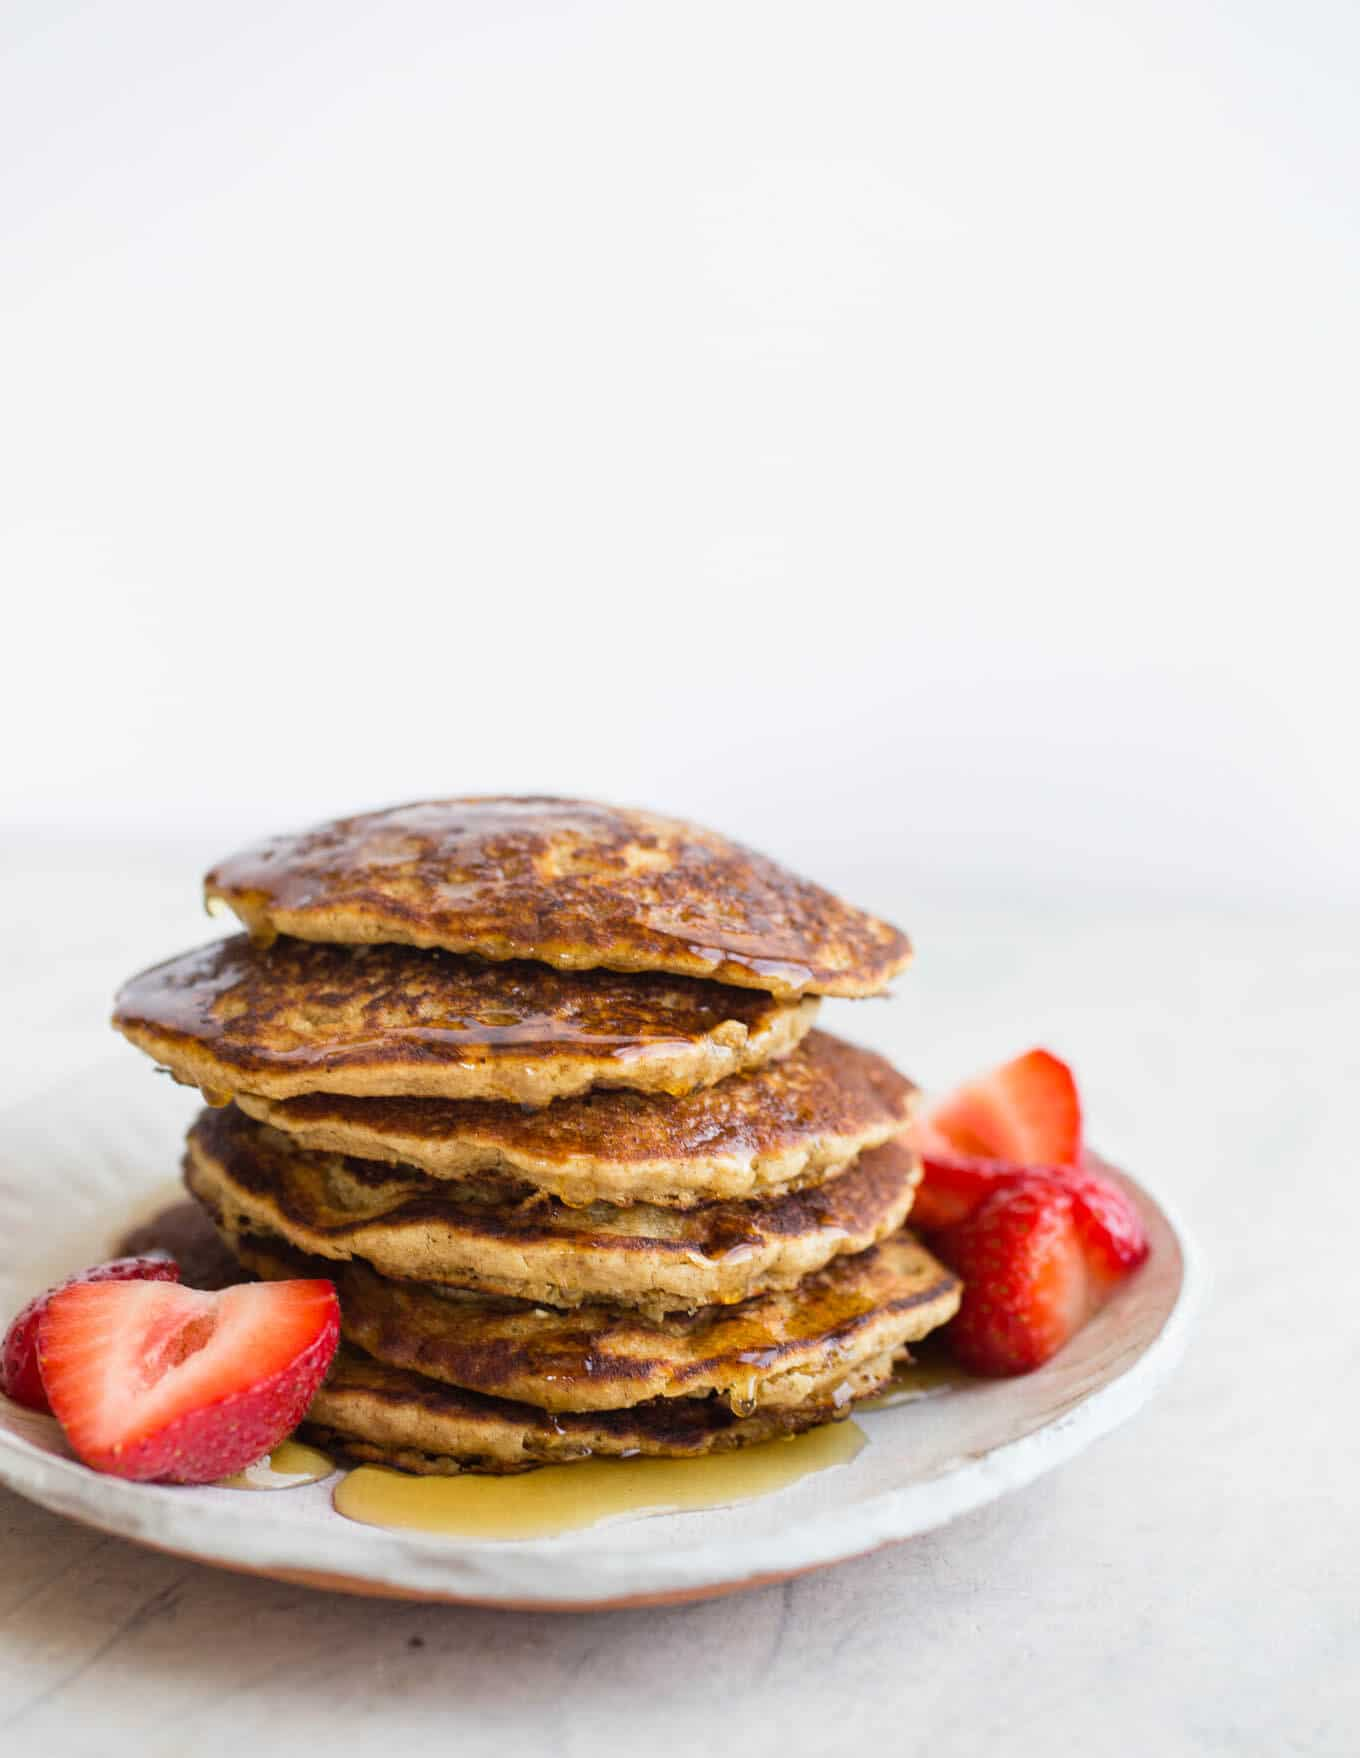 Gluten-free Vegan Oat Flour Pancakes made with whole grain gluten-free oats, white rice flour, applesauce, and non-dairy buttermilk, for a light and tender crumb. An oat flour pancake recipe made without eggs or bananas. Easy and delicious!